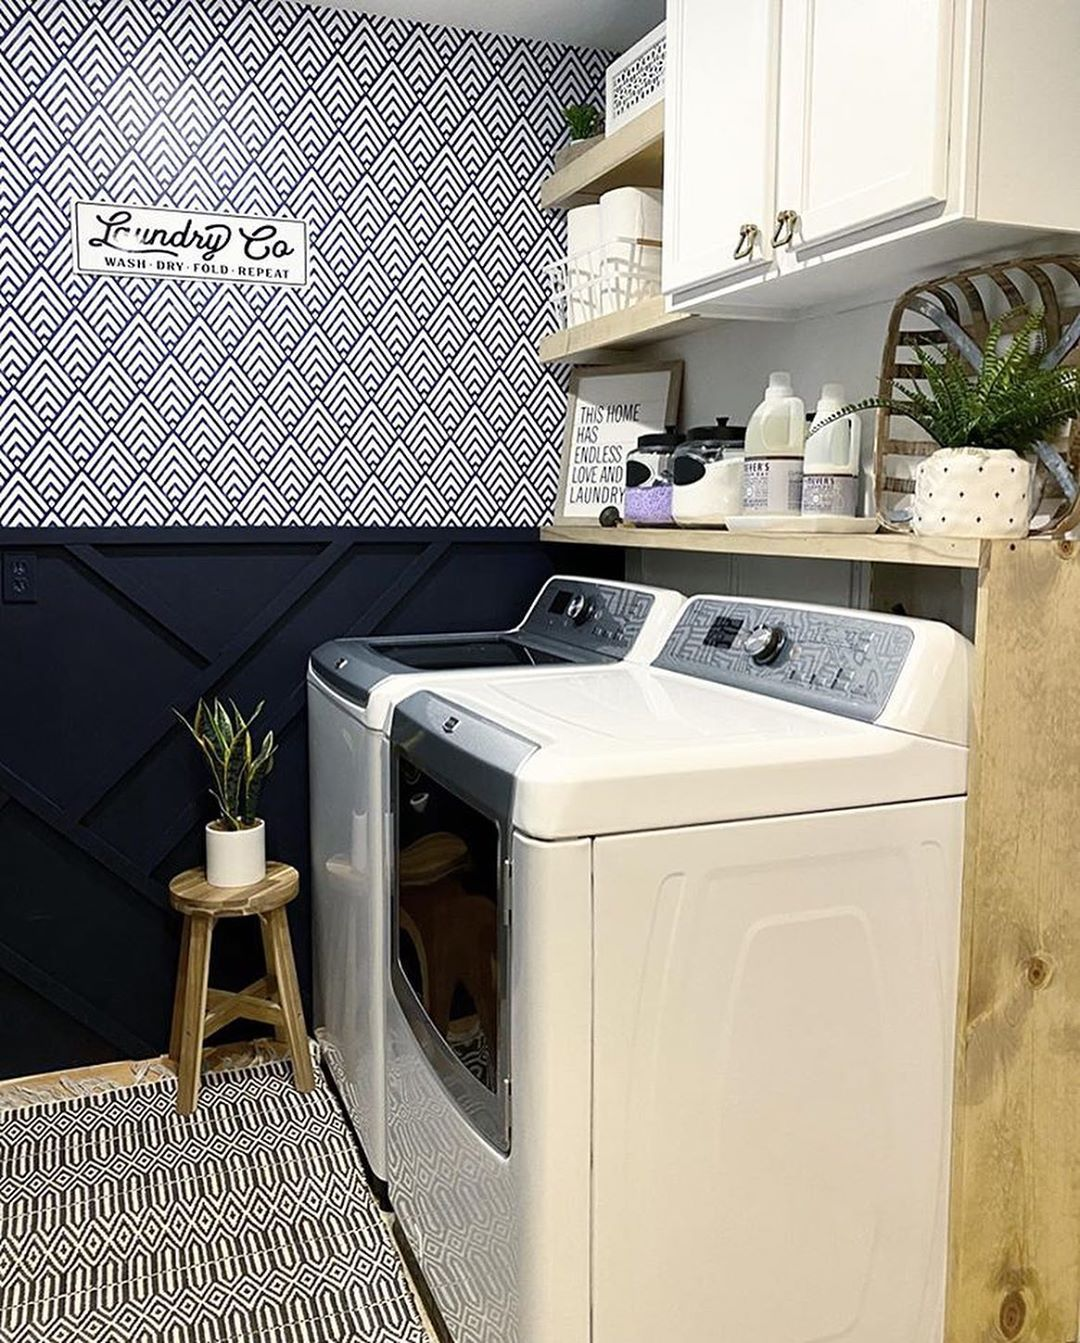 Diy Laundry Room With Wallpaper Peel And Stick Tile Flooring Diy Shelving And Samsunghomeapplian Laundry Room Diy Rustic Laundry Rooms Laundry Room Remodel